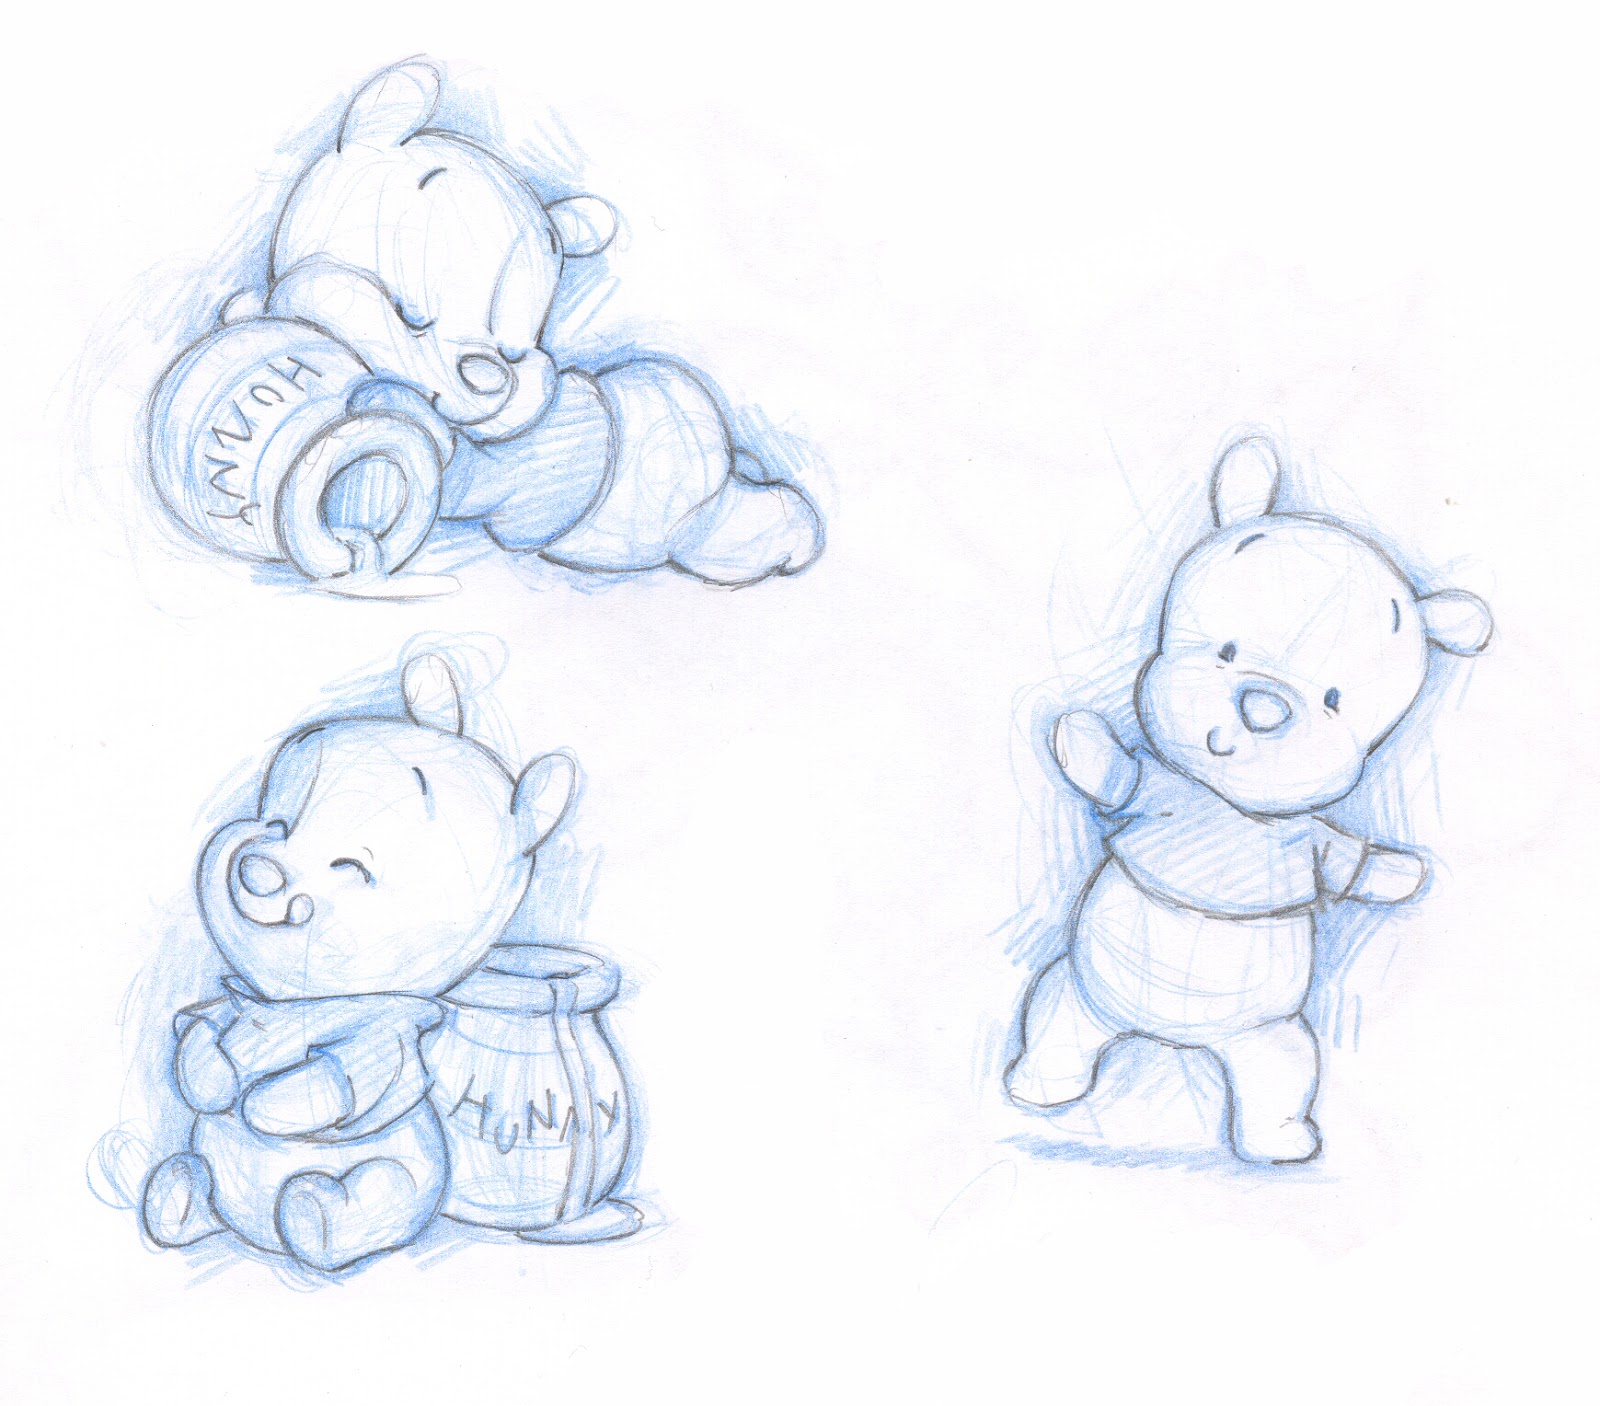 1600x1406 Winnie The Pooh Cute Sketch Just Because You Have A Fast Pass